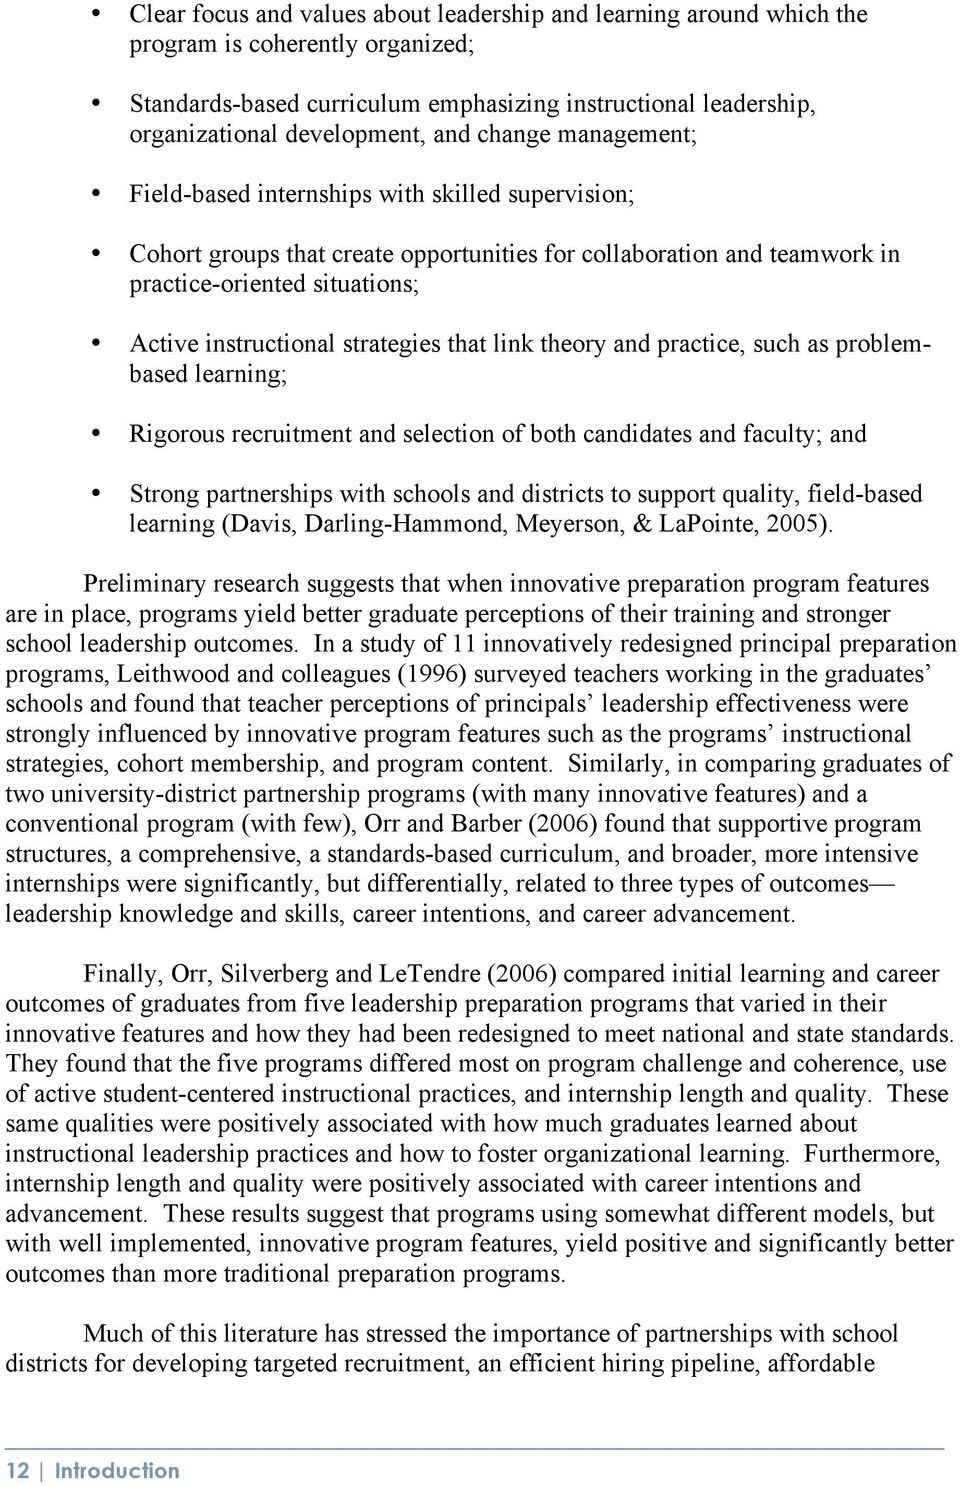 strategies that link theory and practice, such as problembased learning; Rigorous recruitment and selection of both candidates and faculty; and Strong partnerships with schools and districts to